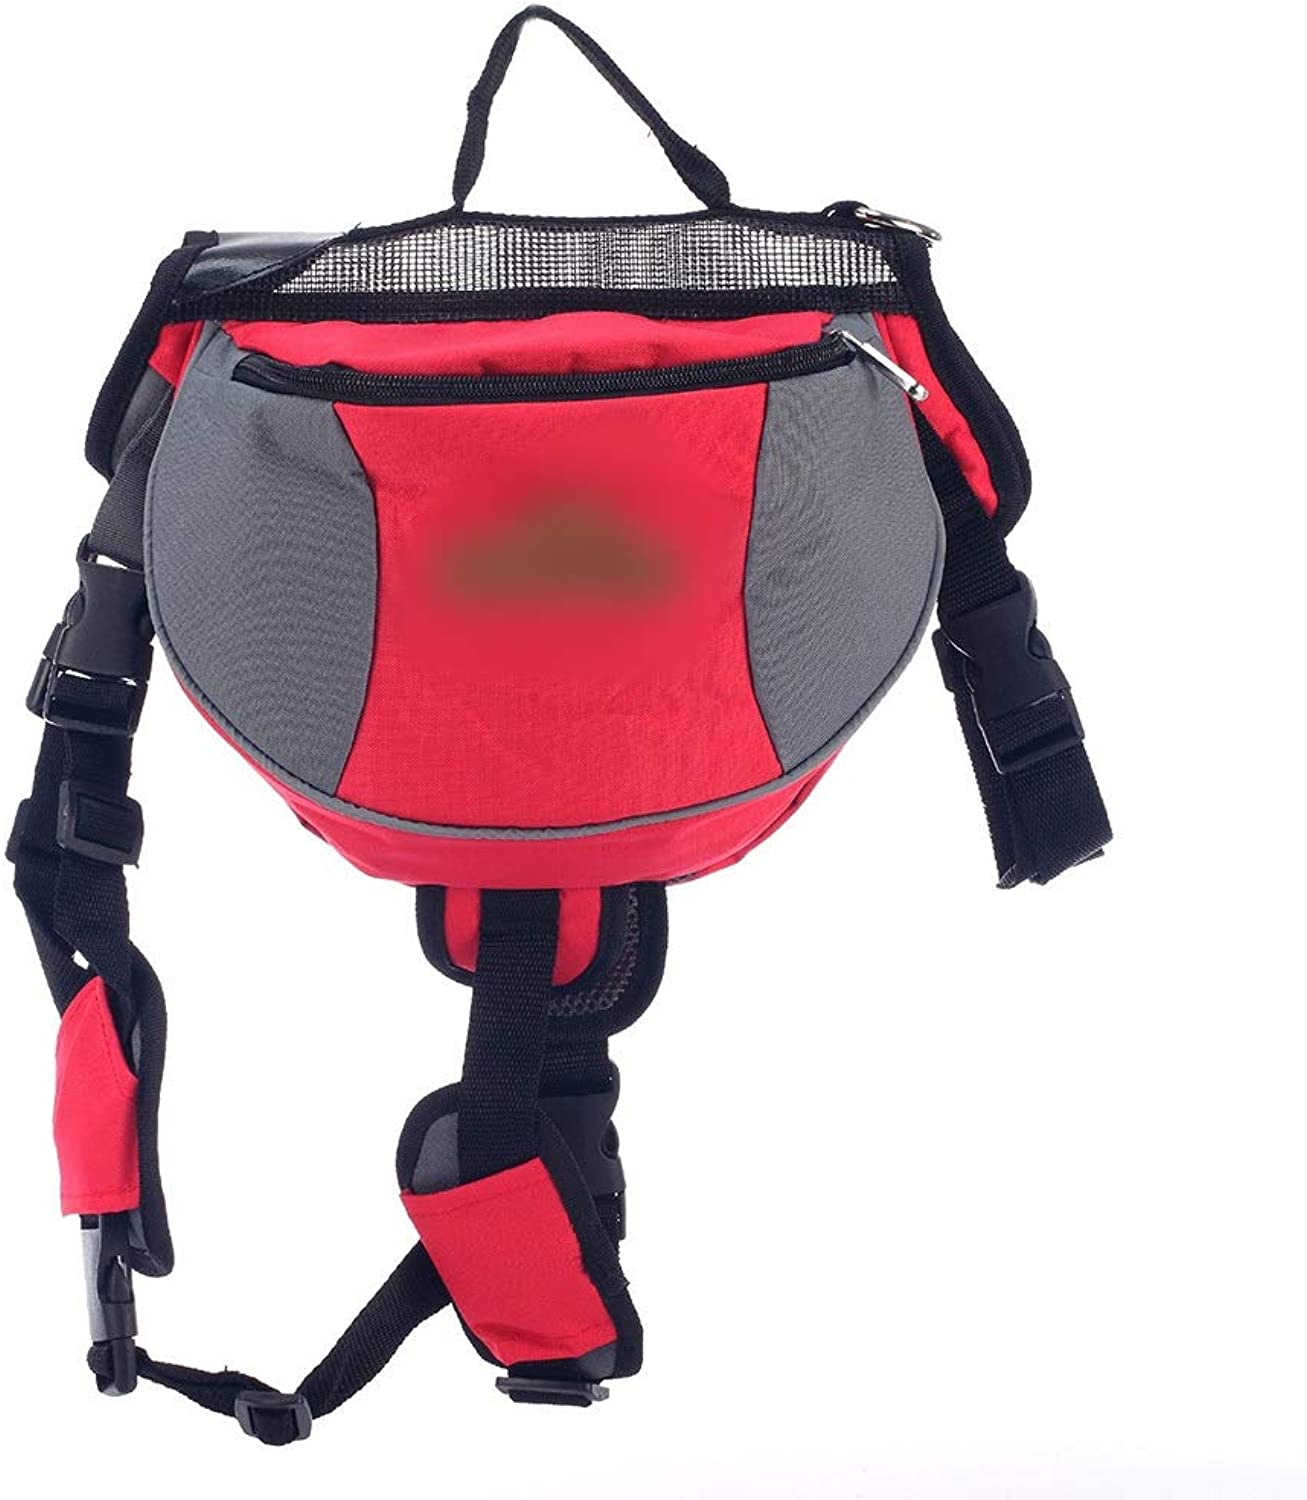 HUAyue Pet Bag Oxford Cloth from Backpack Portable Bag Cat and Dog Backpack,Breathable Backpack (color   Red, Size   L)